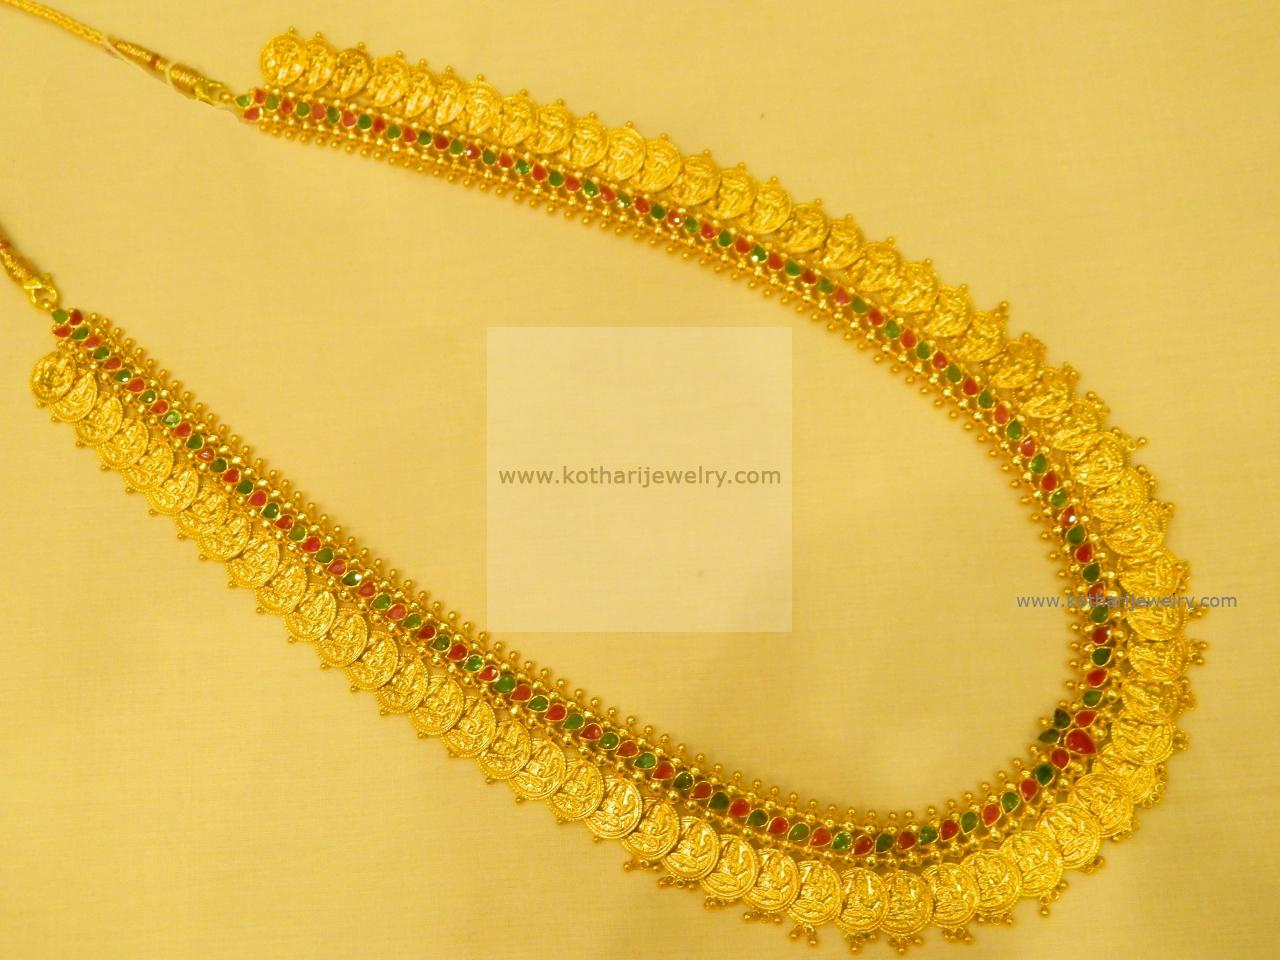 Necklaces / Harams - Gold Jewellery Necklaces / Harams (NK66103305-20 ...